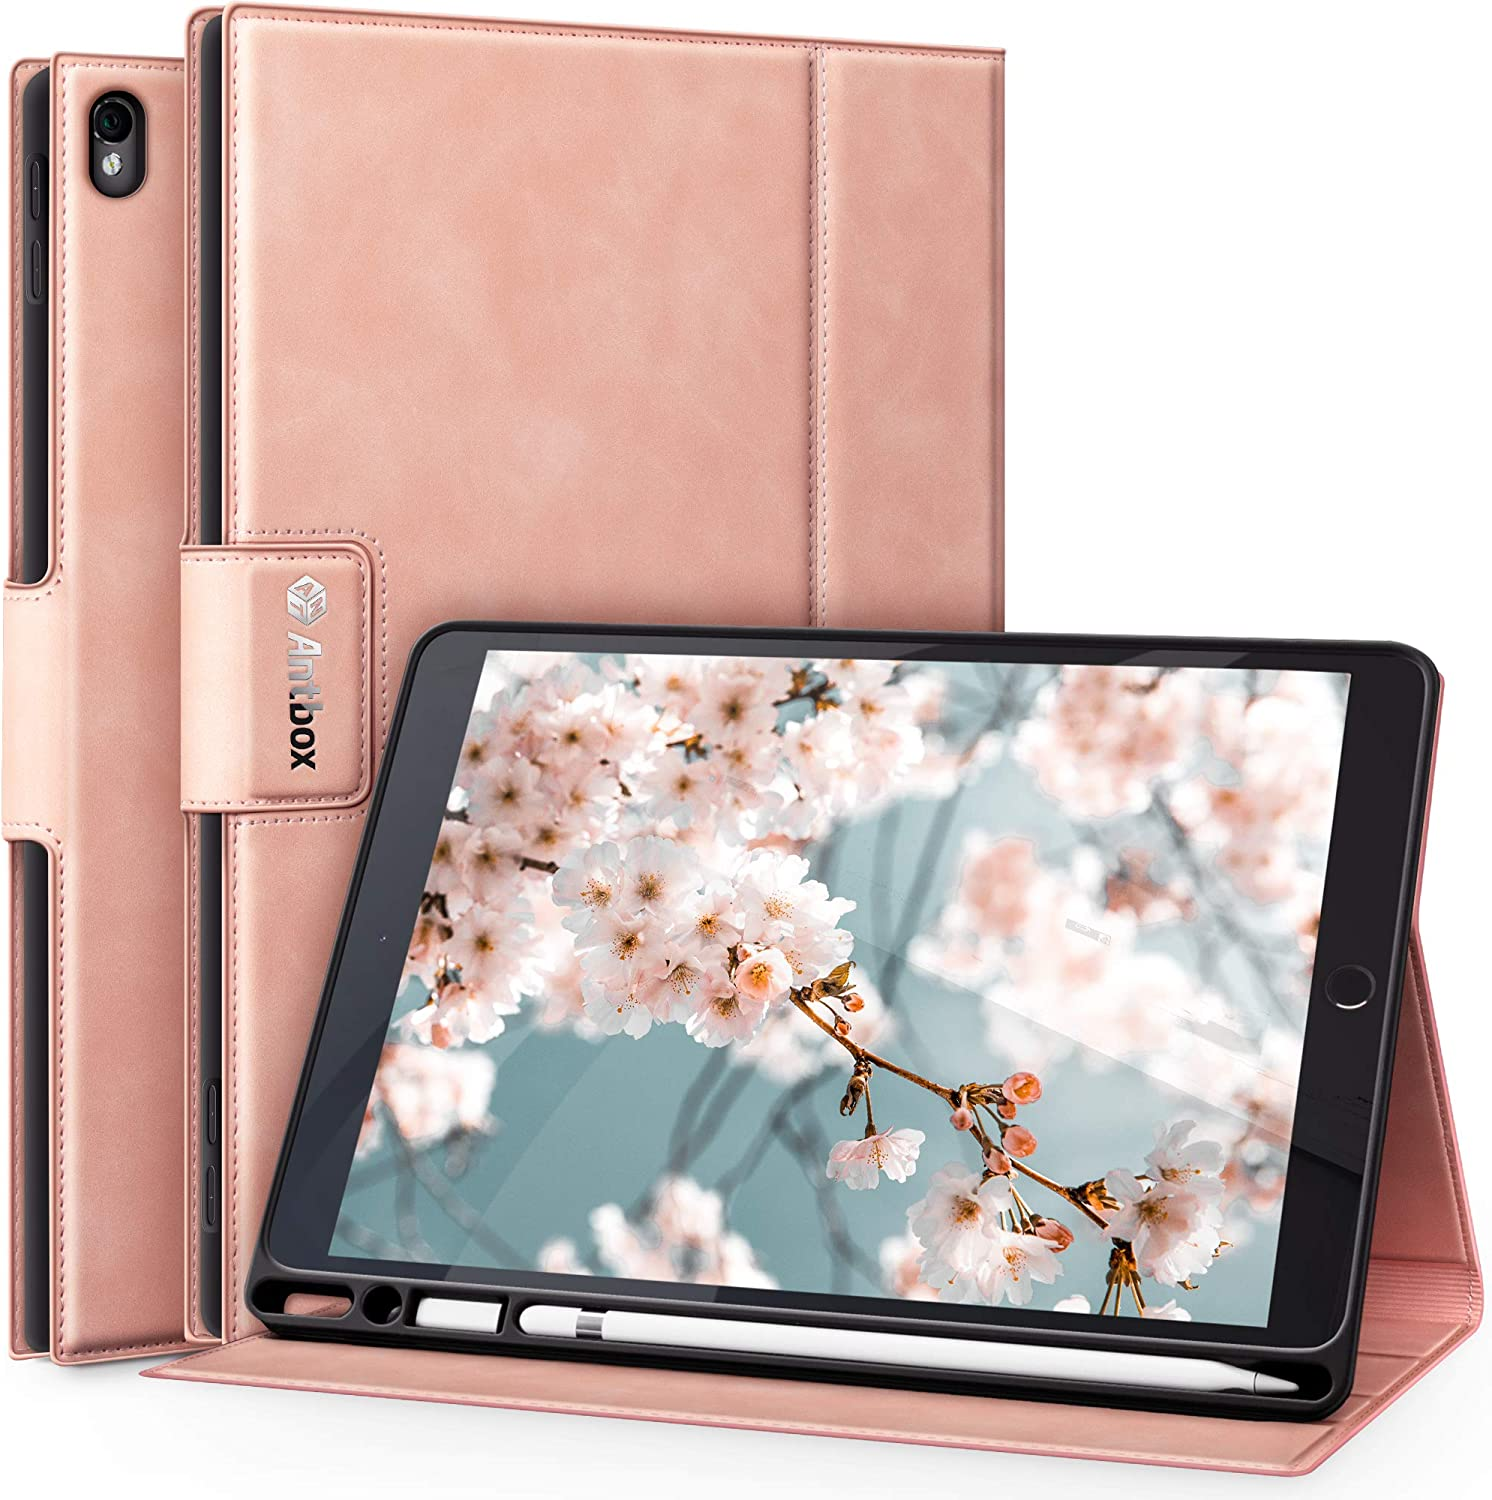 """Antbox iPad Air (3rd Gen) 10.5"""" 2019 / iPad Pro 10.5"""" 2017 Case with Built-in Apple Pencil Holder Auto Sleep/Wake Function PU Leather Smart Cover for iPad 10.5 Inch (Pink)"""